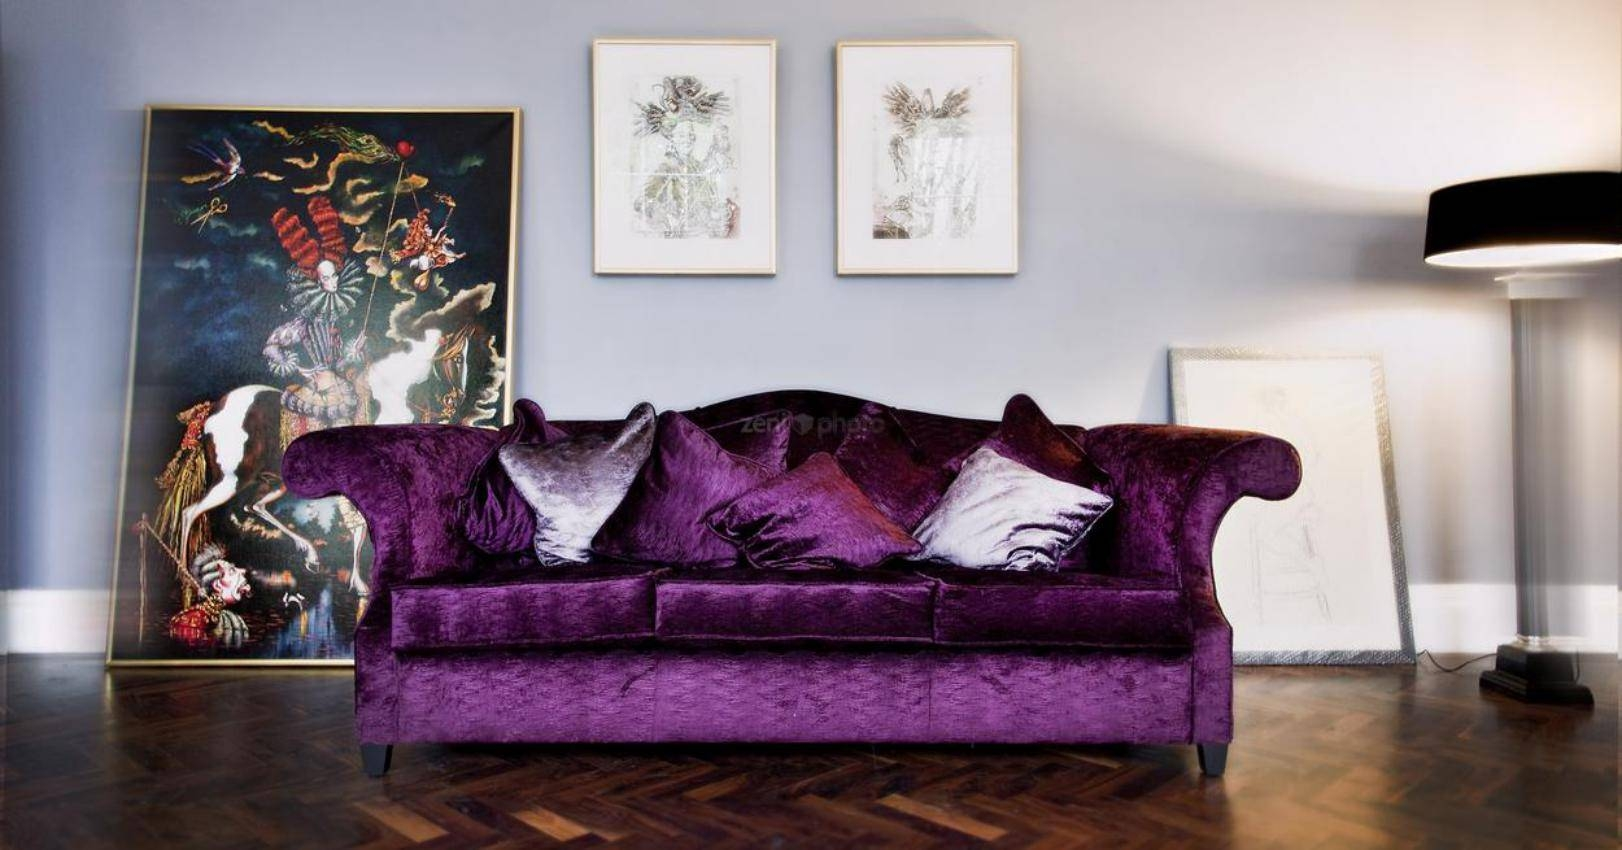 Luxurious Velvet Purple Sofa With Art Decor – Myohomes inside Velvet Purple Sofas (Image 14 of 30)